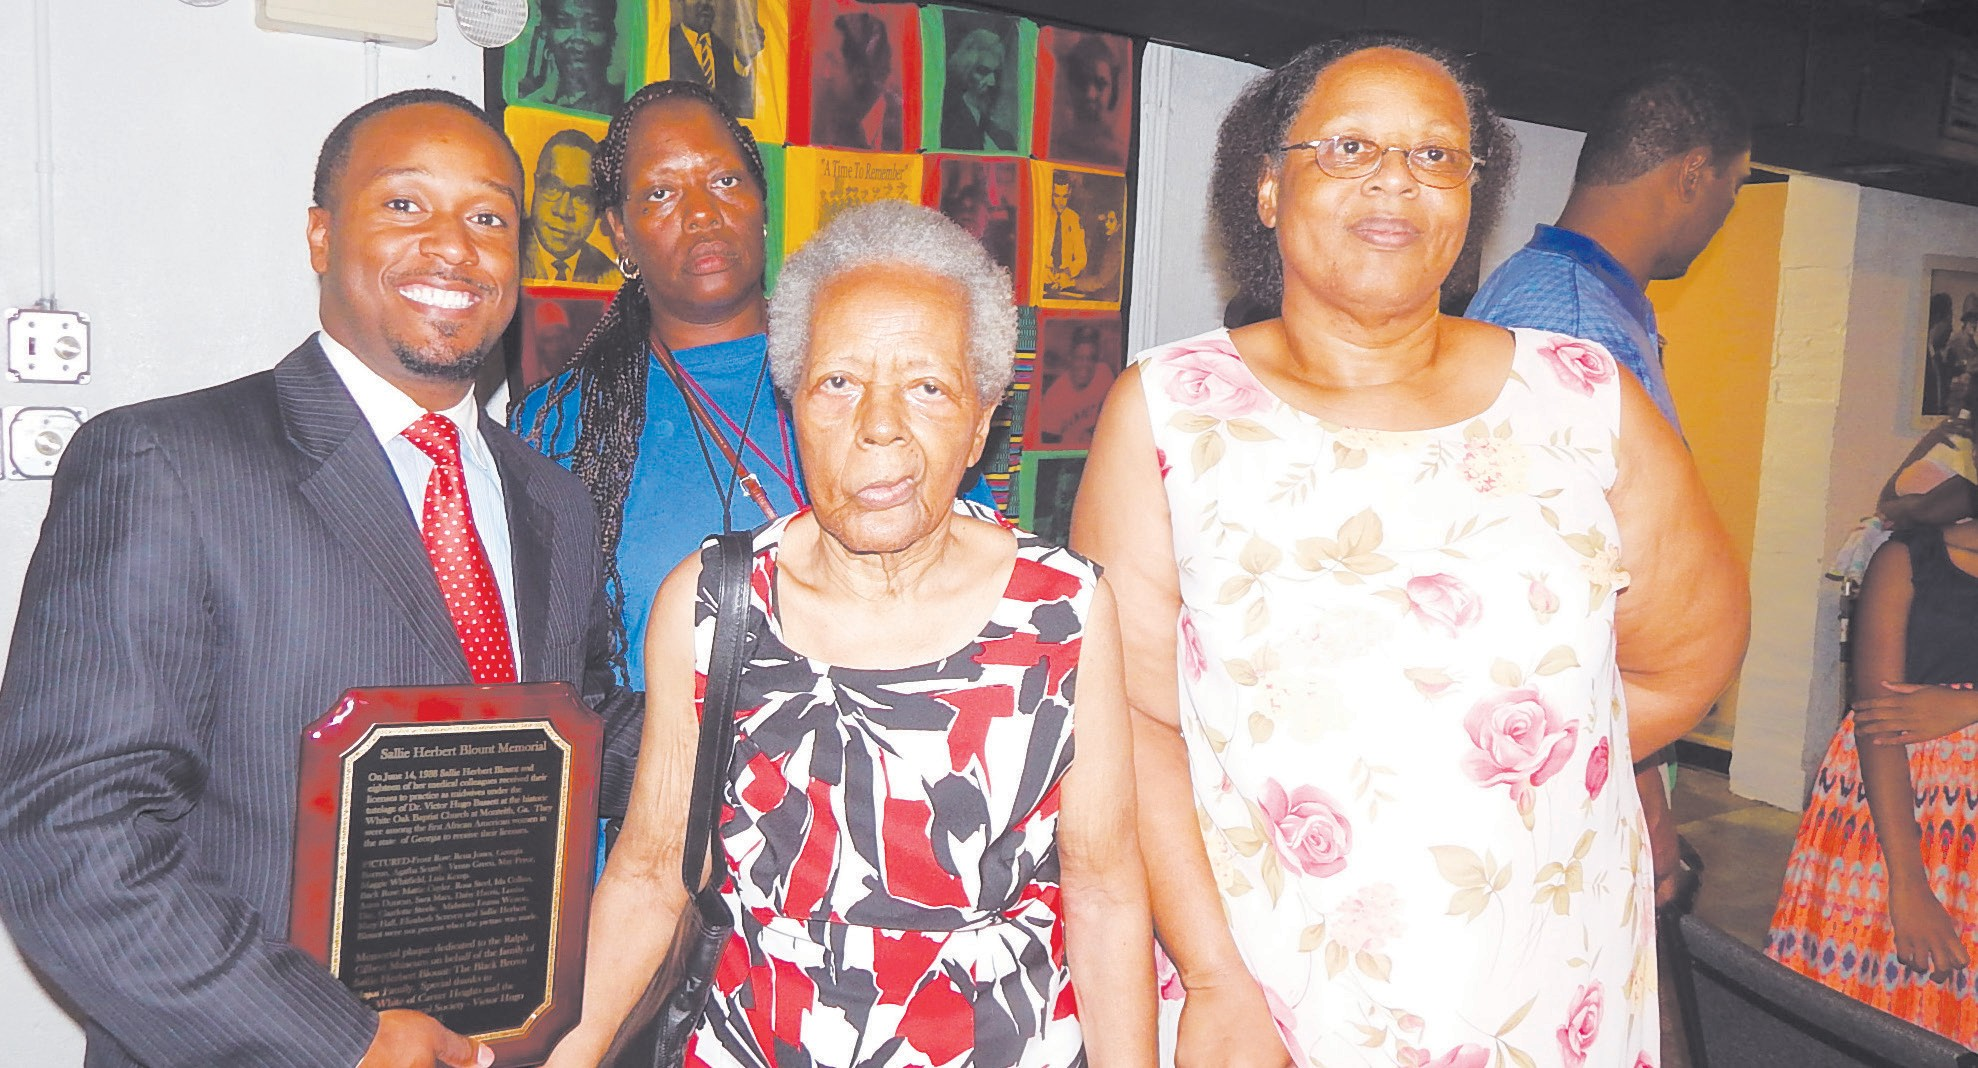 Carl Miller, Board Chair of RMG Civil Rights Museum pictured with Midwife Louise Day family including granddaughter Mrs. Reynolds (the eldest in the group)